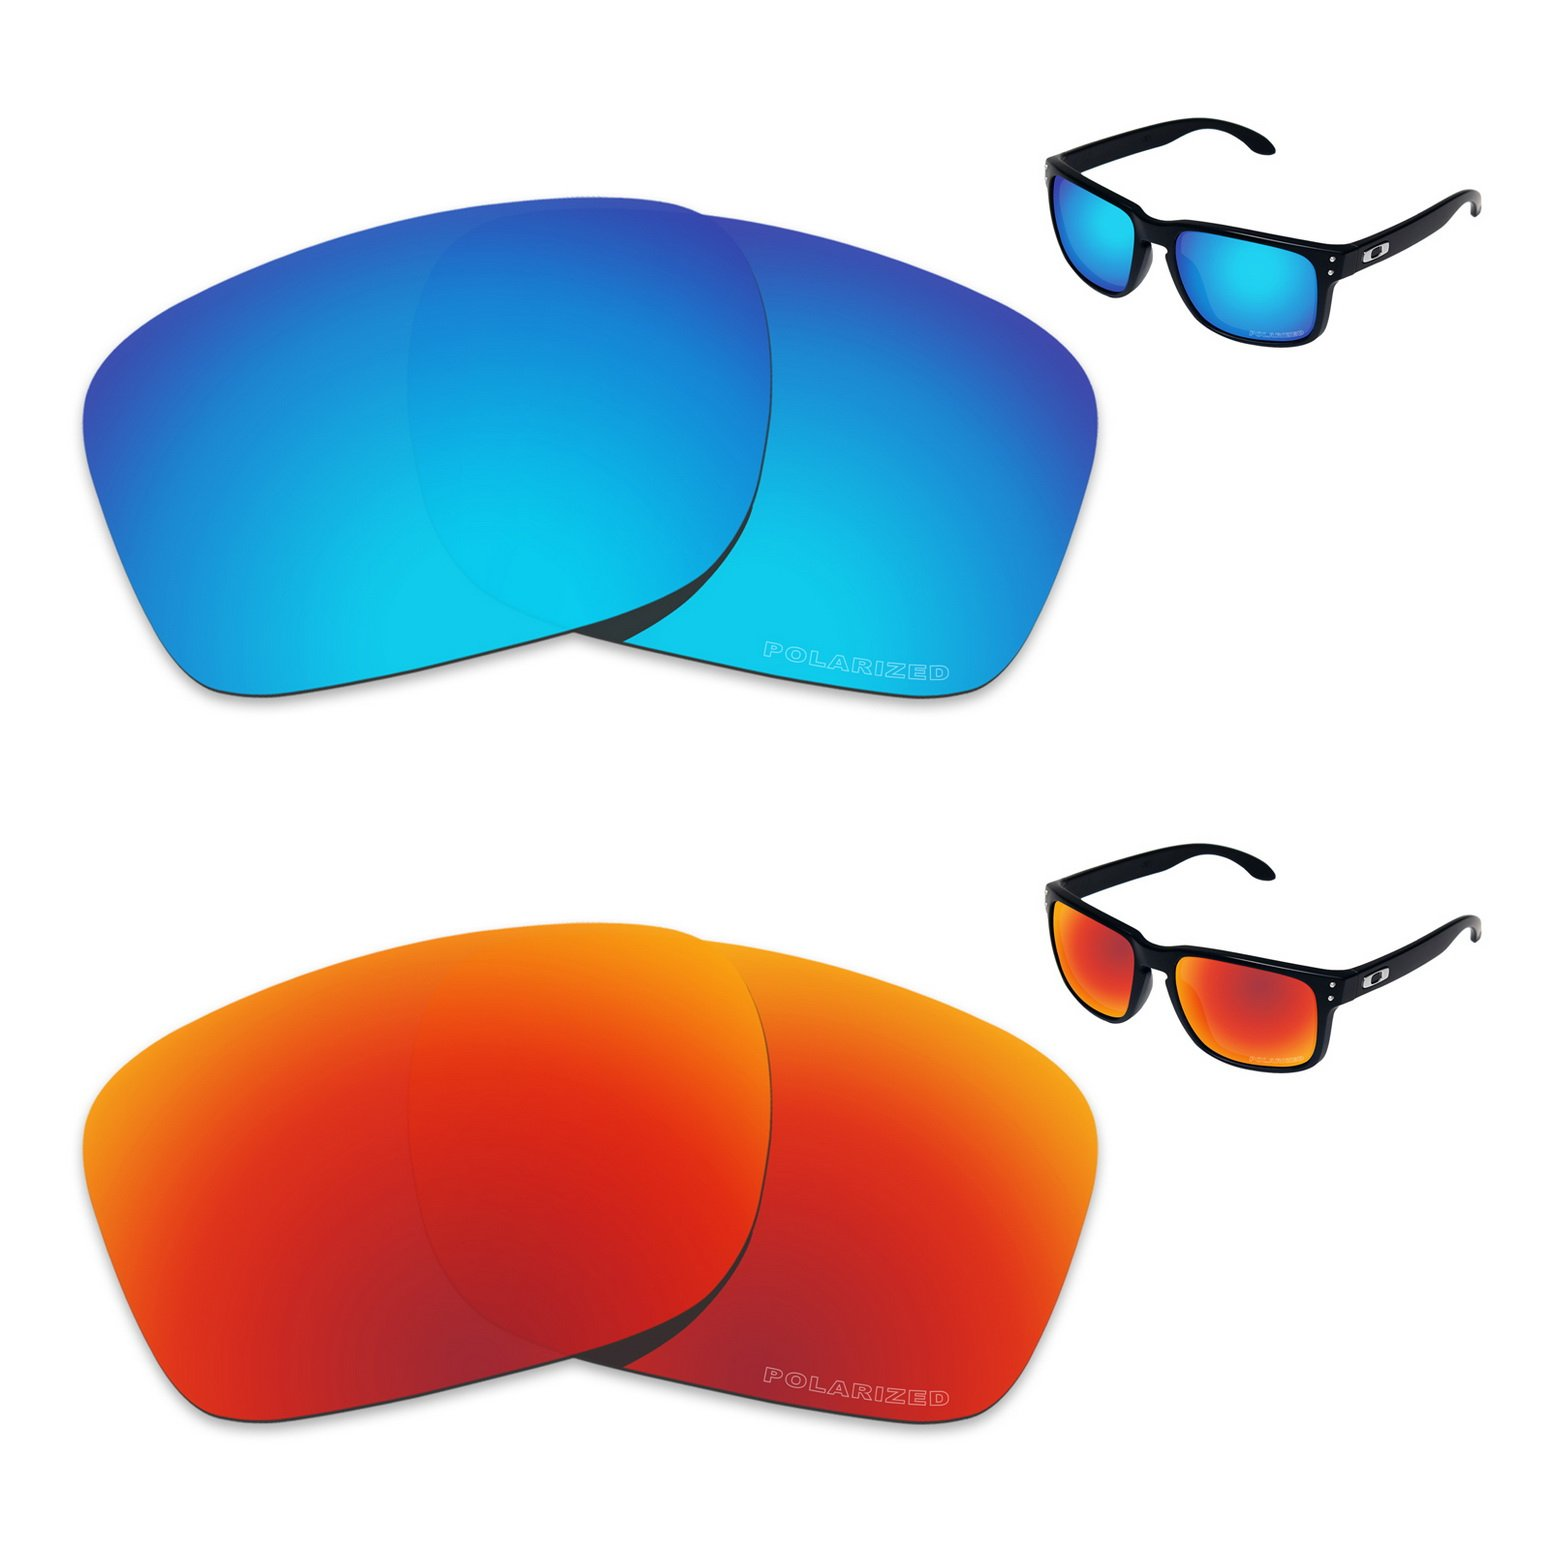 Tintart Performance Replacement Lenses for Oakley Holbrook Polarized Etched - Value Pack